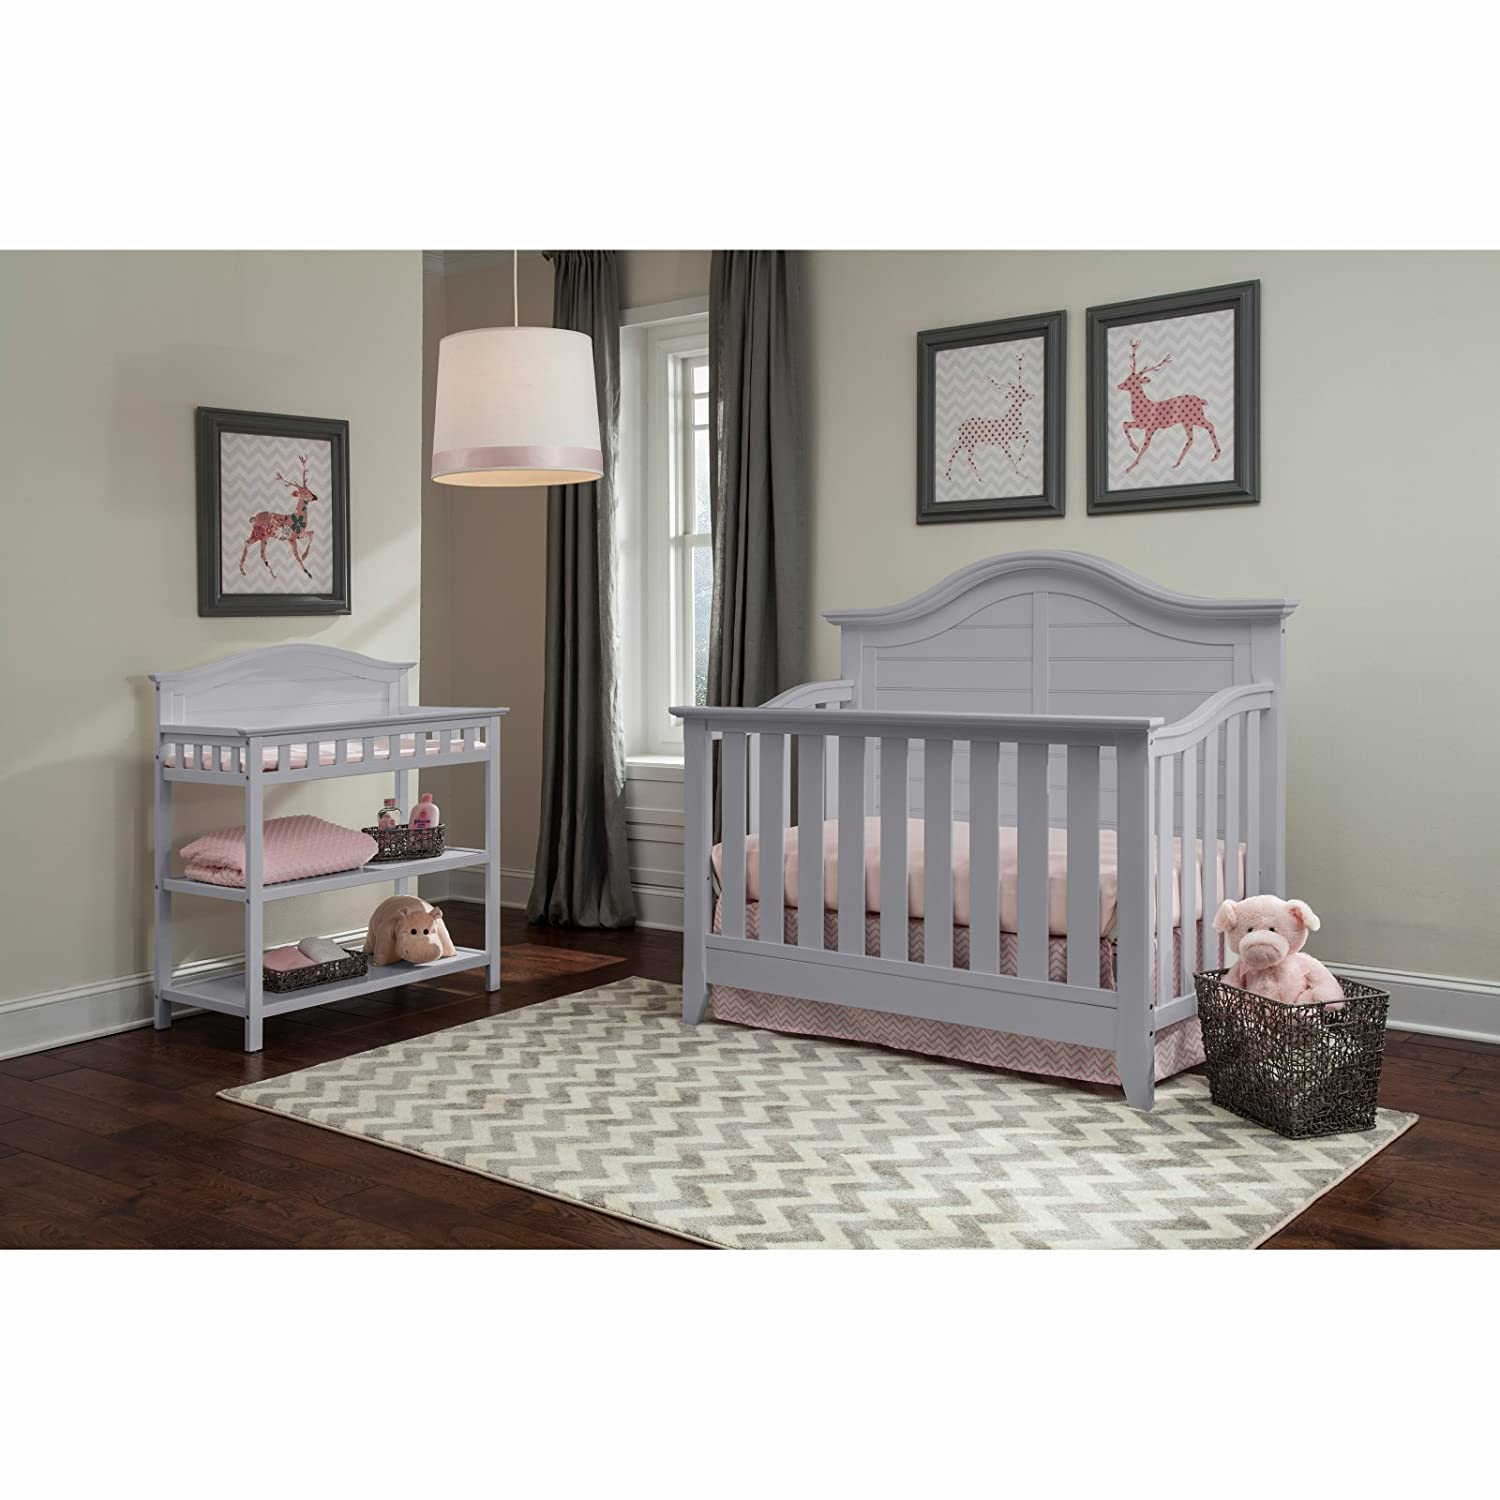 Amazon.com : Thomasville Kids Southern Dunes Lifestyle 4-in-1 ...